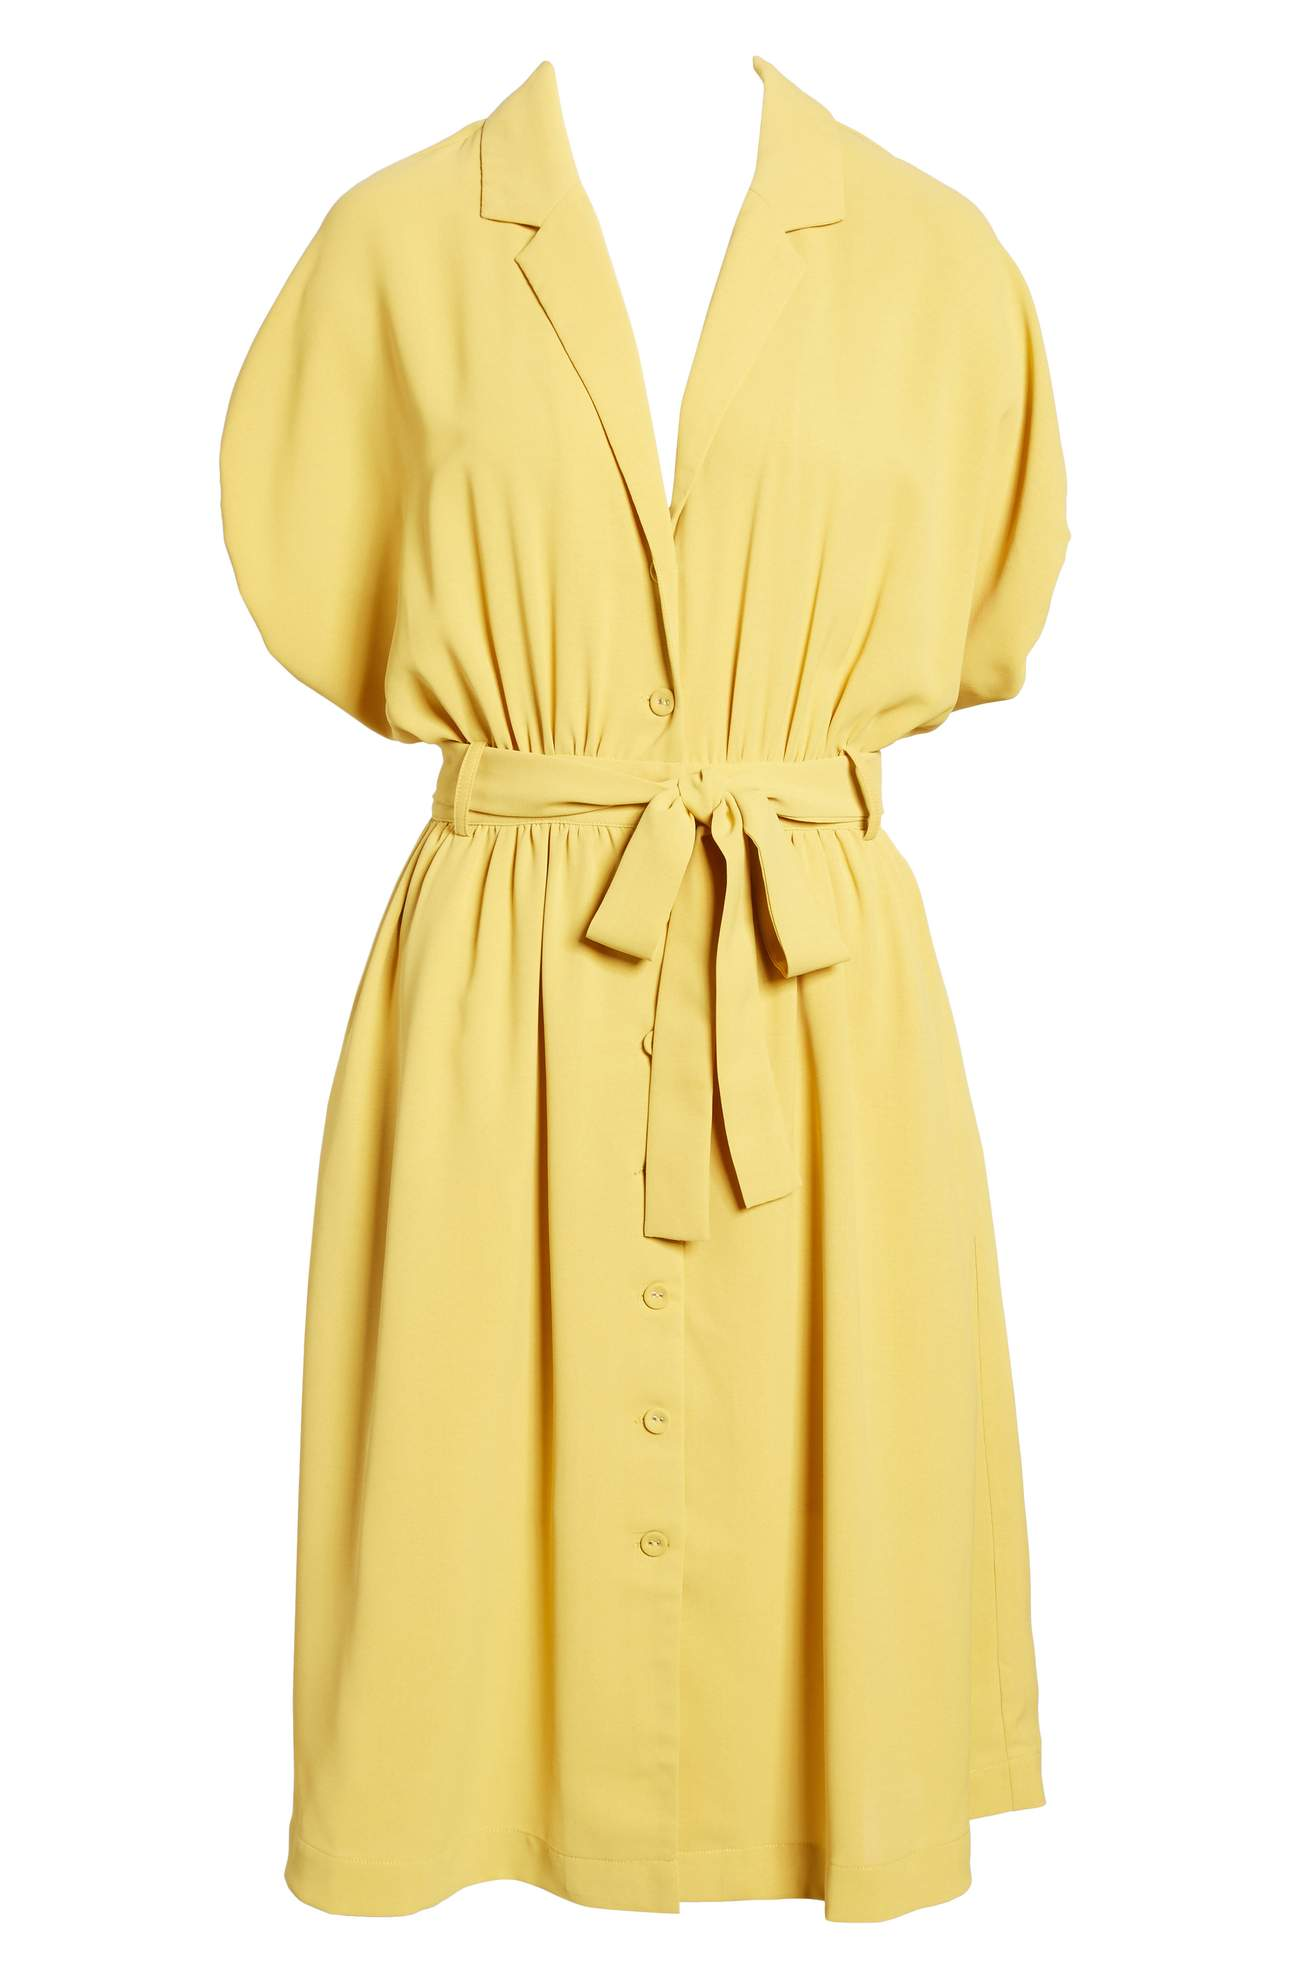 <p>Onto Mama Bear.{&amp;nbsp;} We love this brightly colored and relaxed in style statement dress.{&amp;nbsp;} Yellow IS the color of the season!{&amp;nbsp;} It's church and brunch appropriate. Price: $89.00 at Nordstrom. (Image: Nordstrom){&amp;nbsp;}</p><p></p>